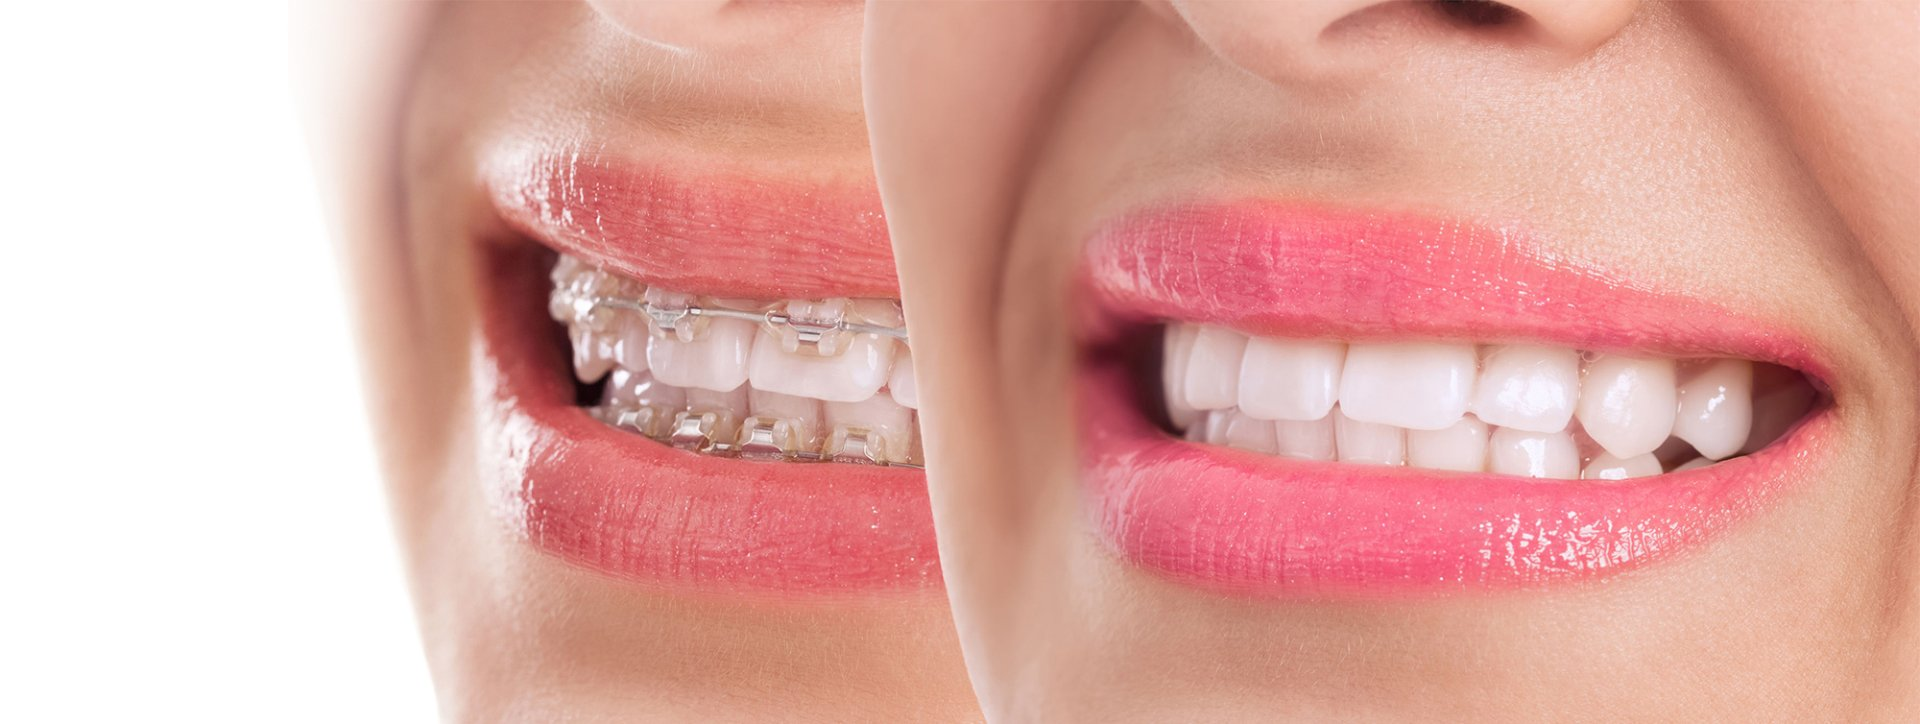 Invisalign are considered better than metal braces